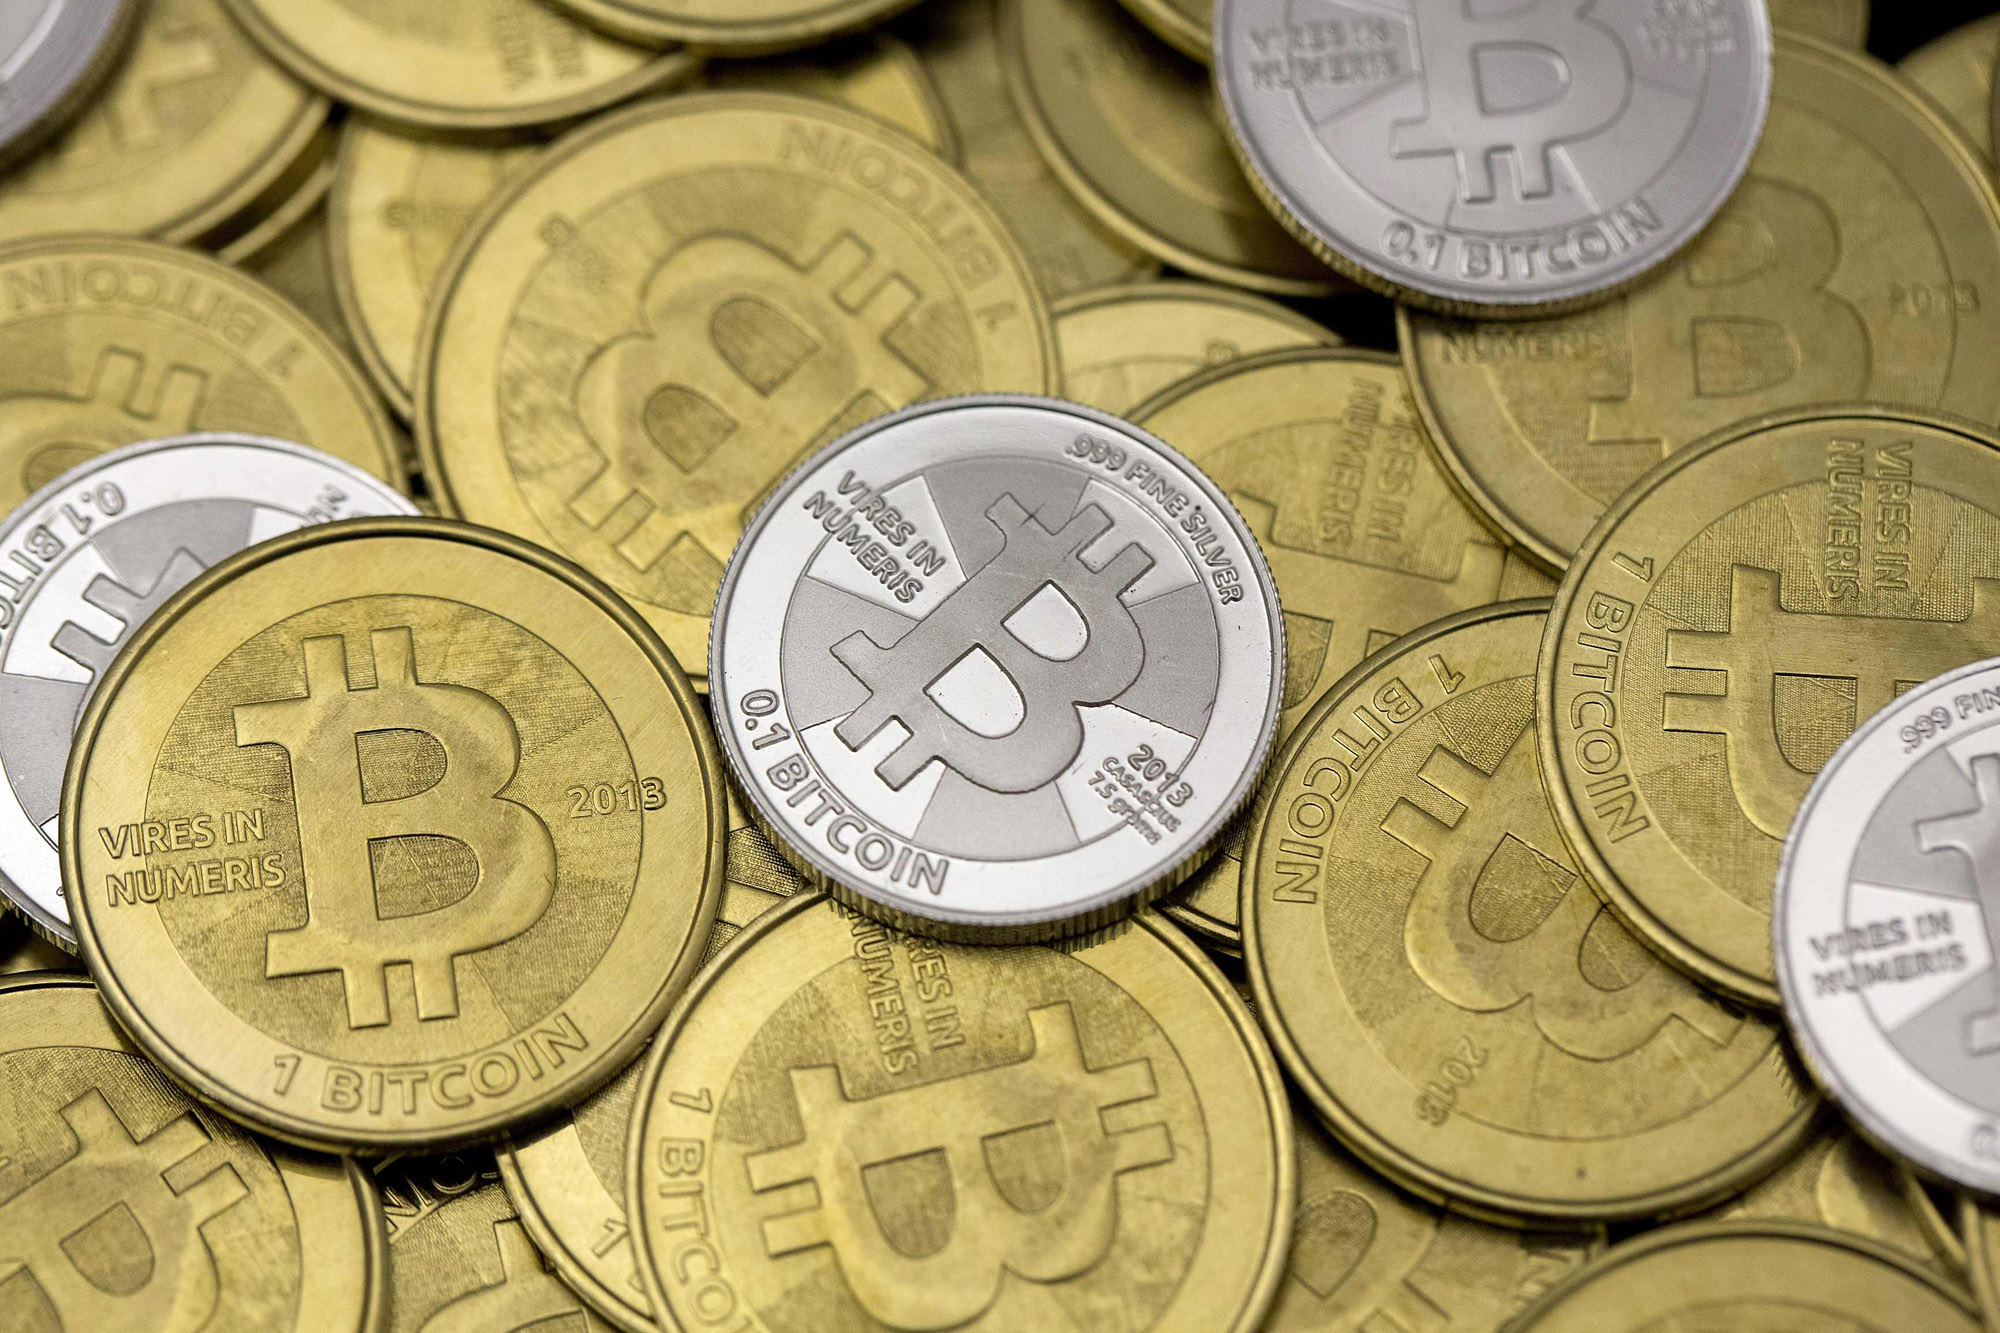 Mt gox finds 200 000 bitcoins in old wallet images place bets on